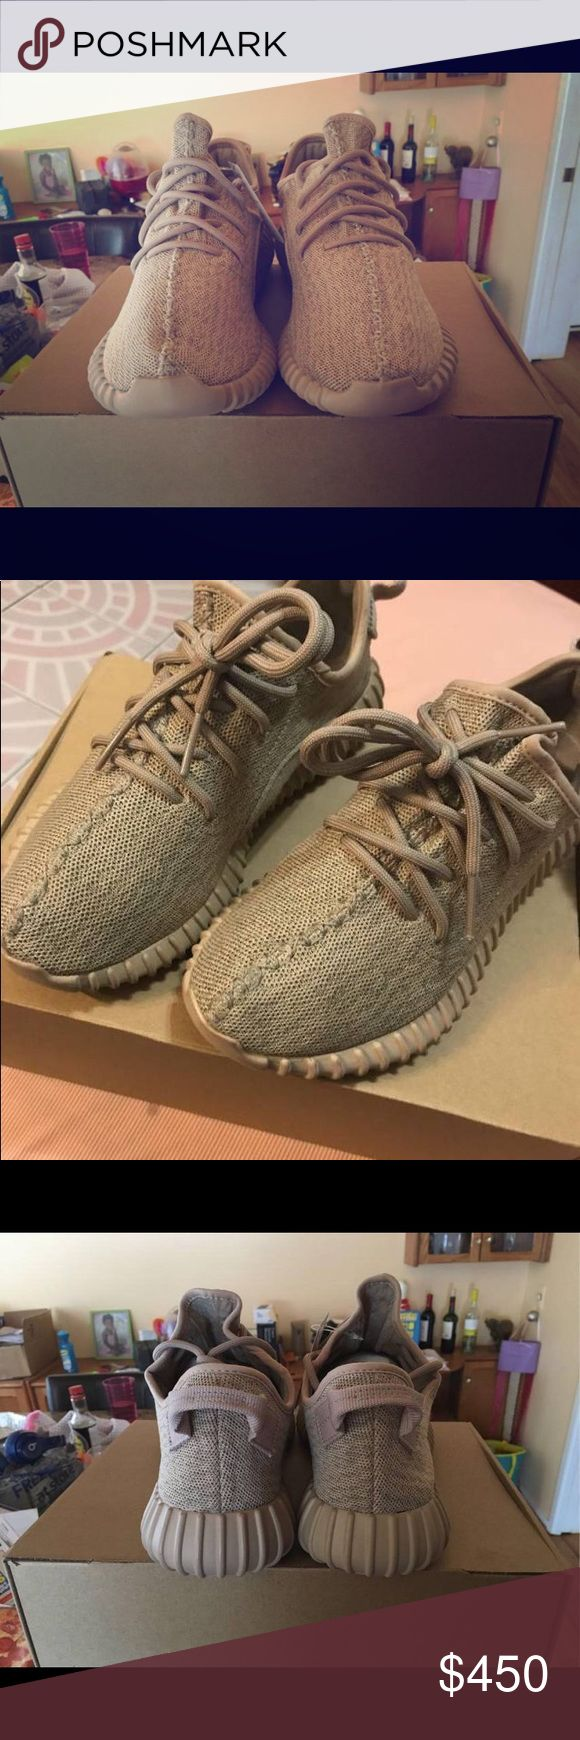 Oxford tan Yeezy ⏩Authentic Yeezys⏪  for Sale / Multiple / All sizes available (WOMAN-MAN) / 4-5 days shipping time (Sometimes arrives in 3days) All shoes 100% authentic - Comes with Original Yeezy 350 Boost V2 Box , Receipt plus more  👟👟👟💲350.00 EACH 👟👟👟👟 Yeezy Shoes Athletic Shoes